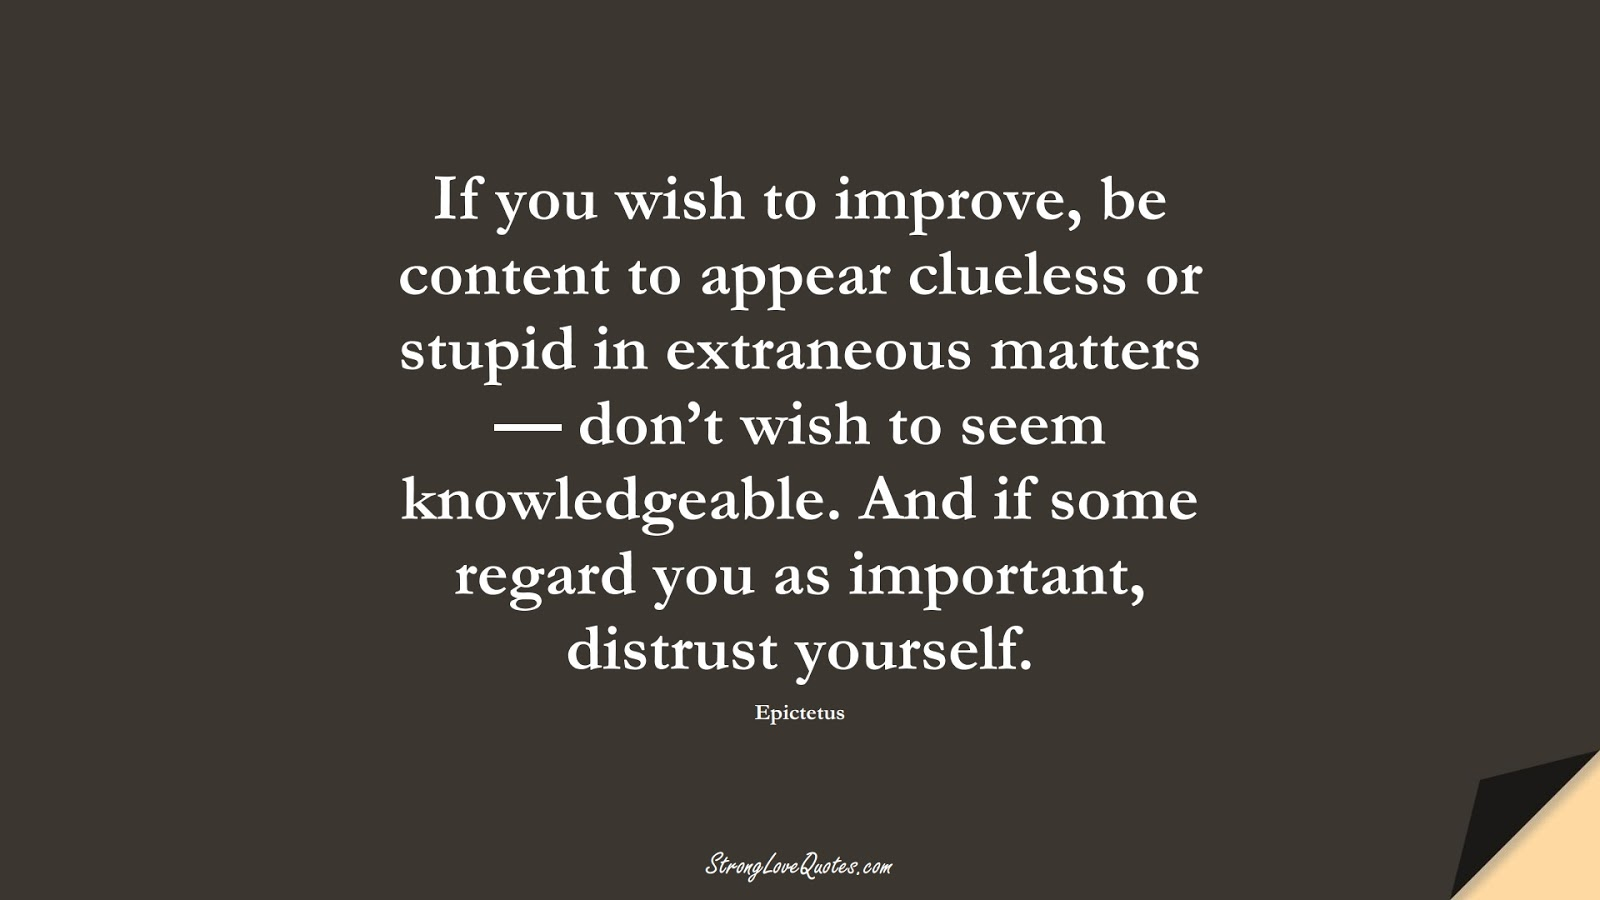 If you wish to improve, be content to appear clueless or stupid in extraneous matters — don't wish to seem knowledgeable. And if some regard you as important, distrust yourself. (Epictetus);  #LearningQuotes